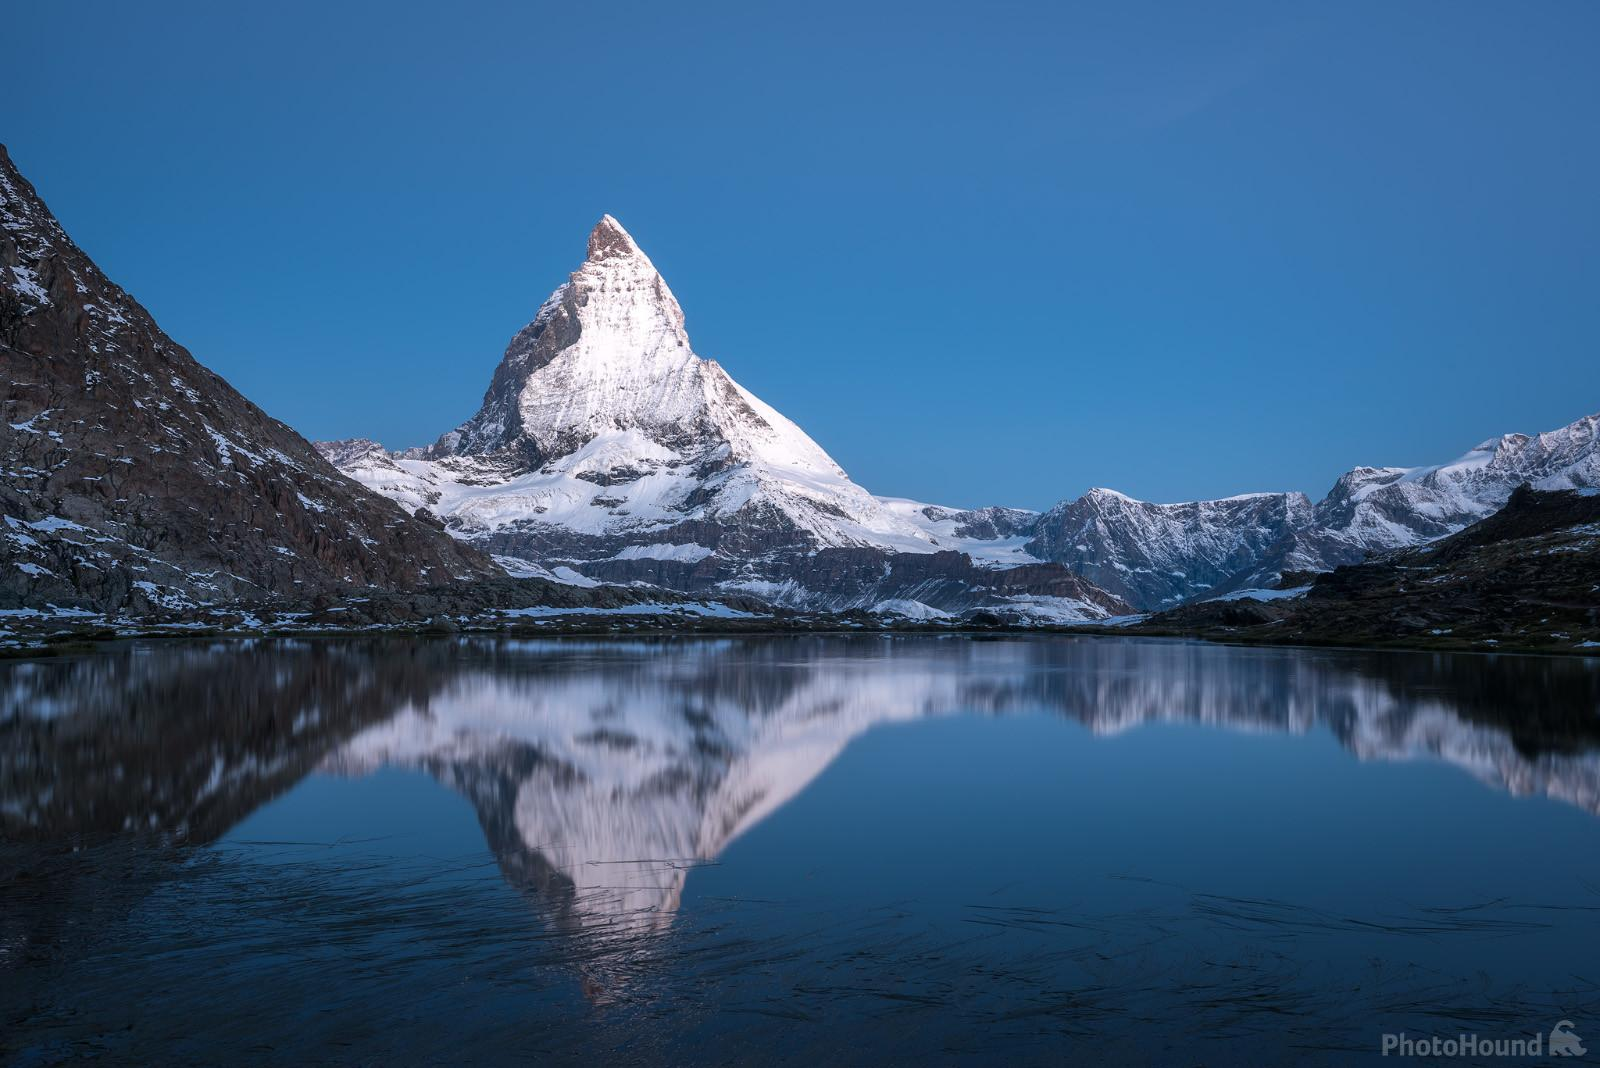 Blue Hour at Riffelsee